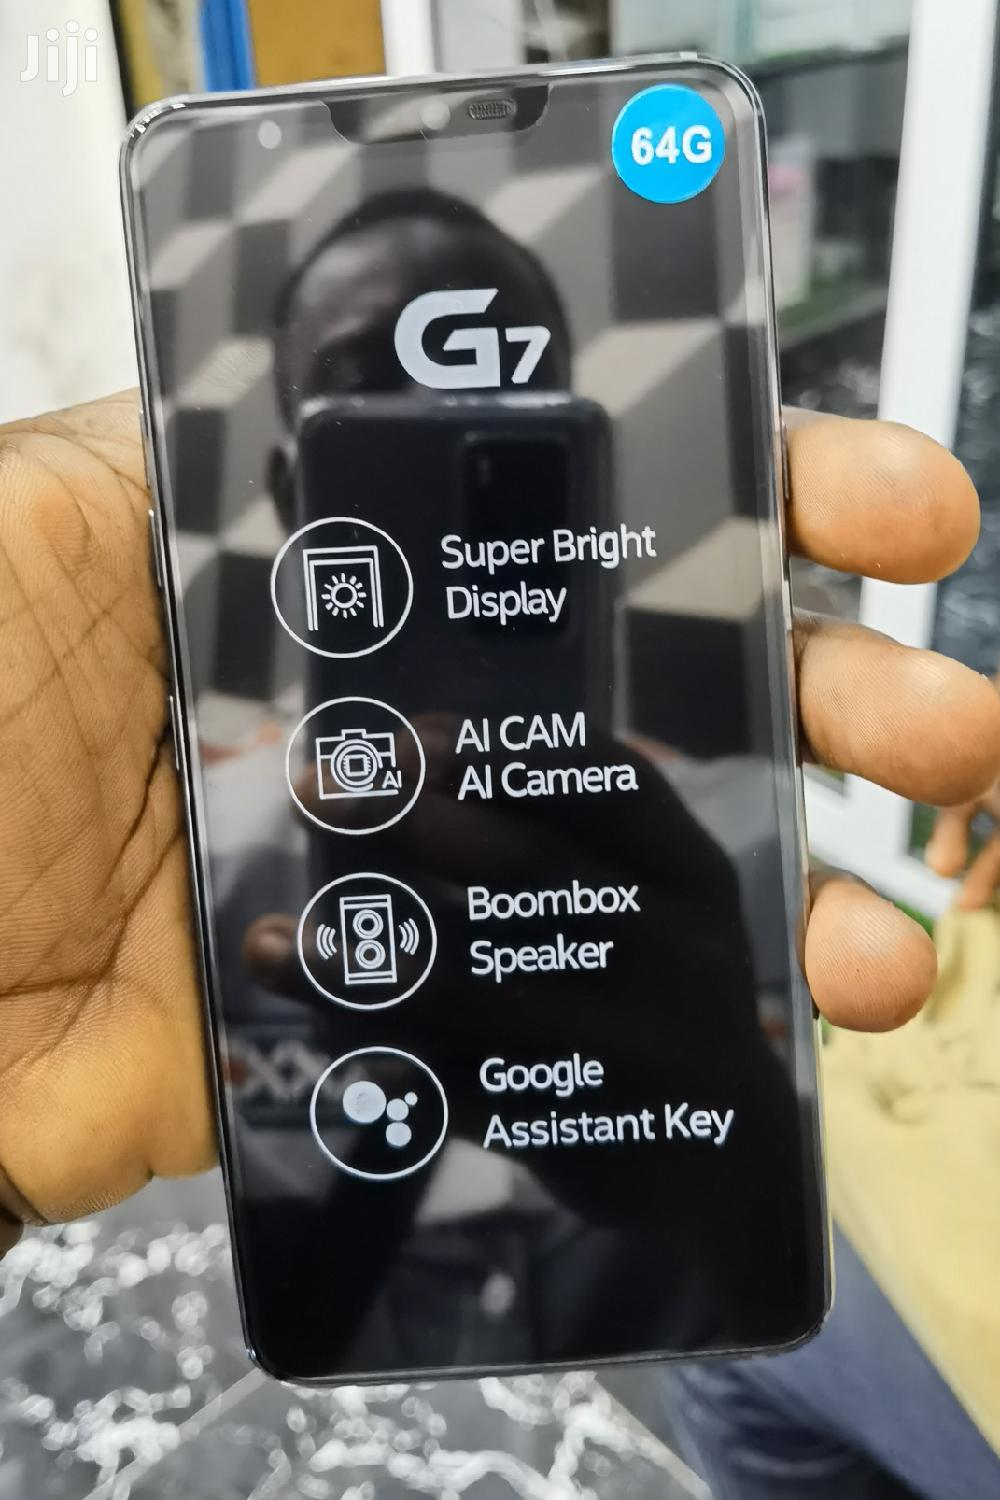 Archive: New LG G7 ThinQ 64 GB